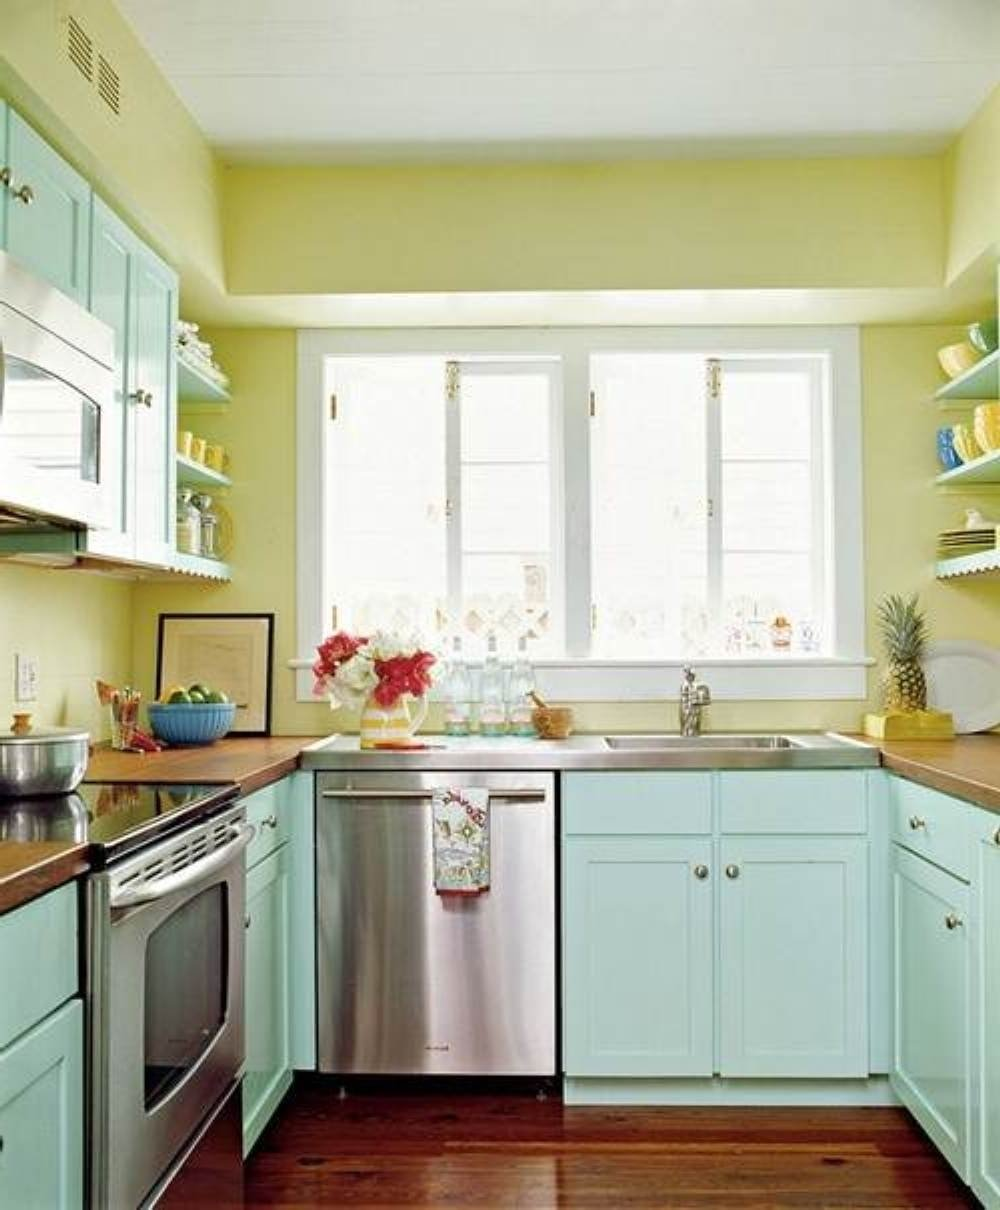 10 Amazing Kitchen Color Ideas For Small Kitchens kitchen cabinet wood colors kitchen color ideas for small kitchens 2021